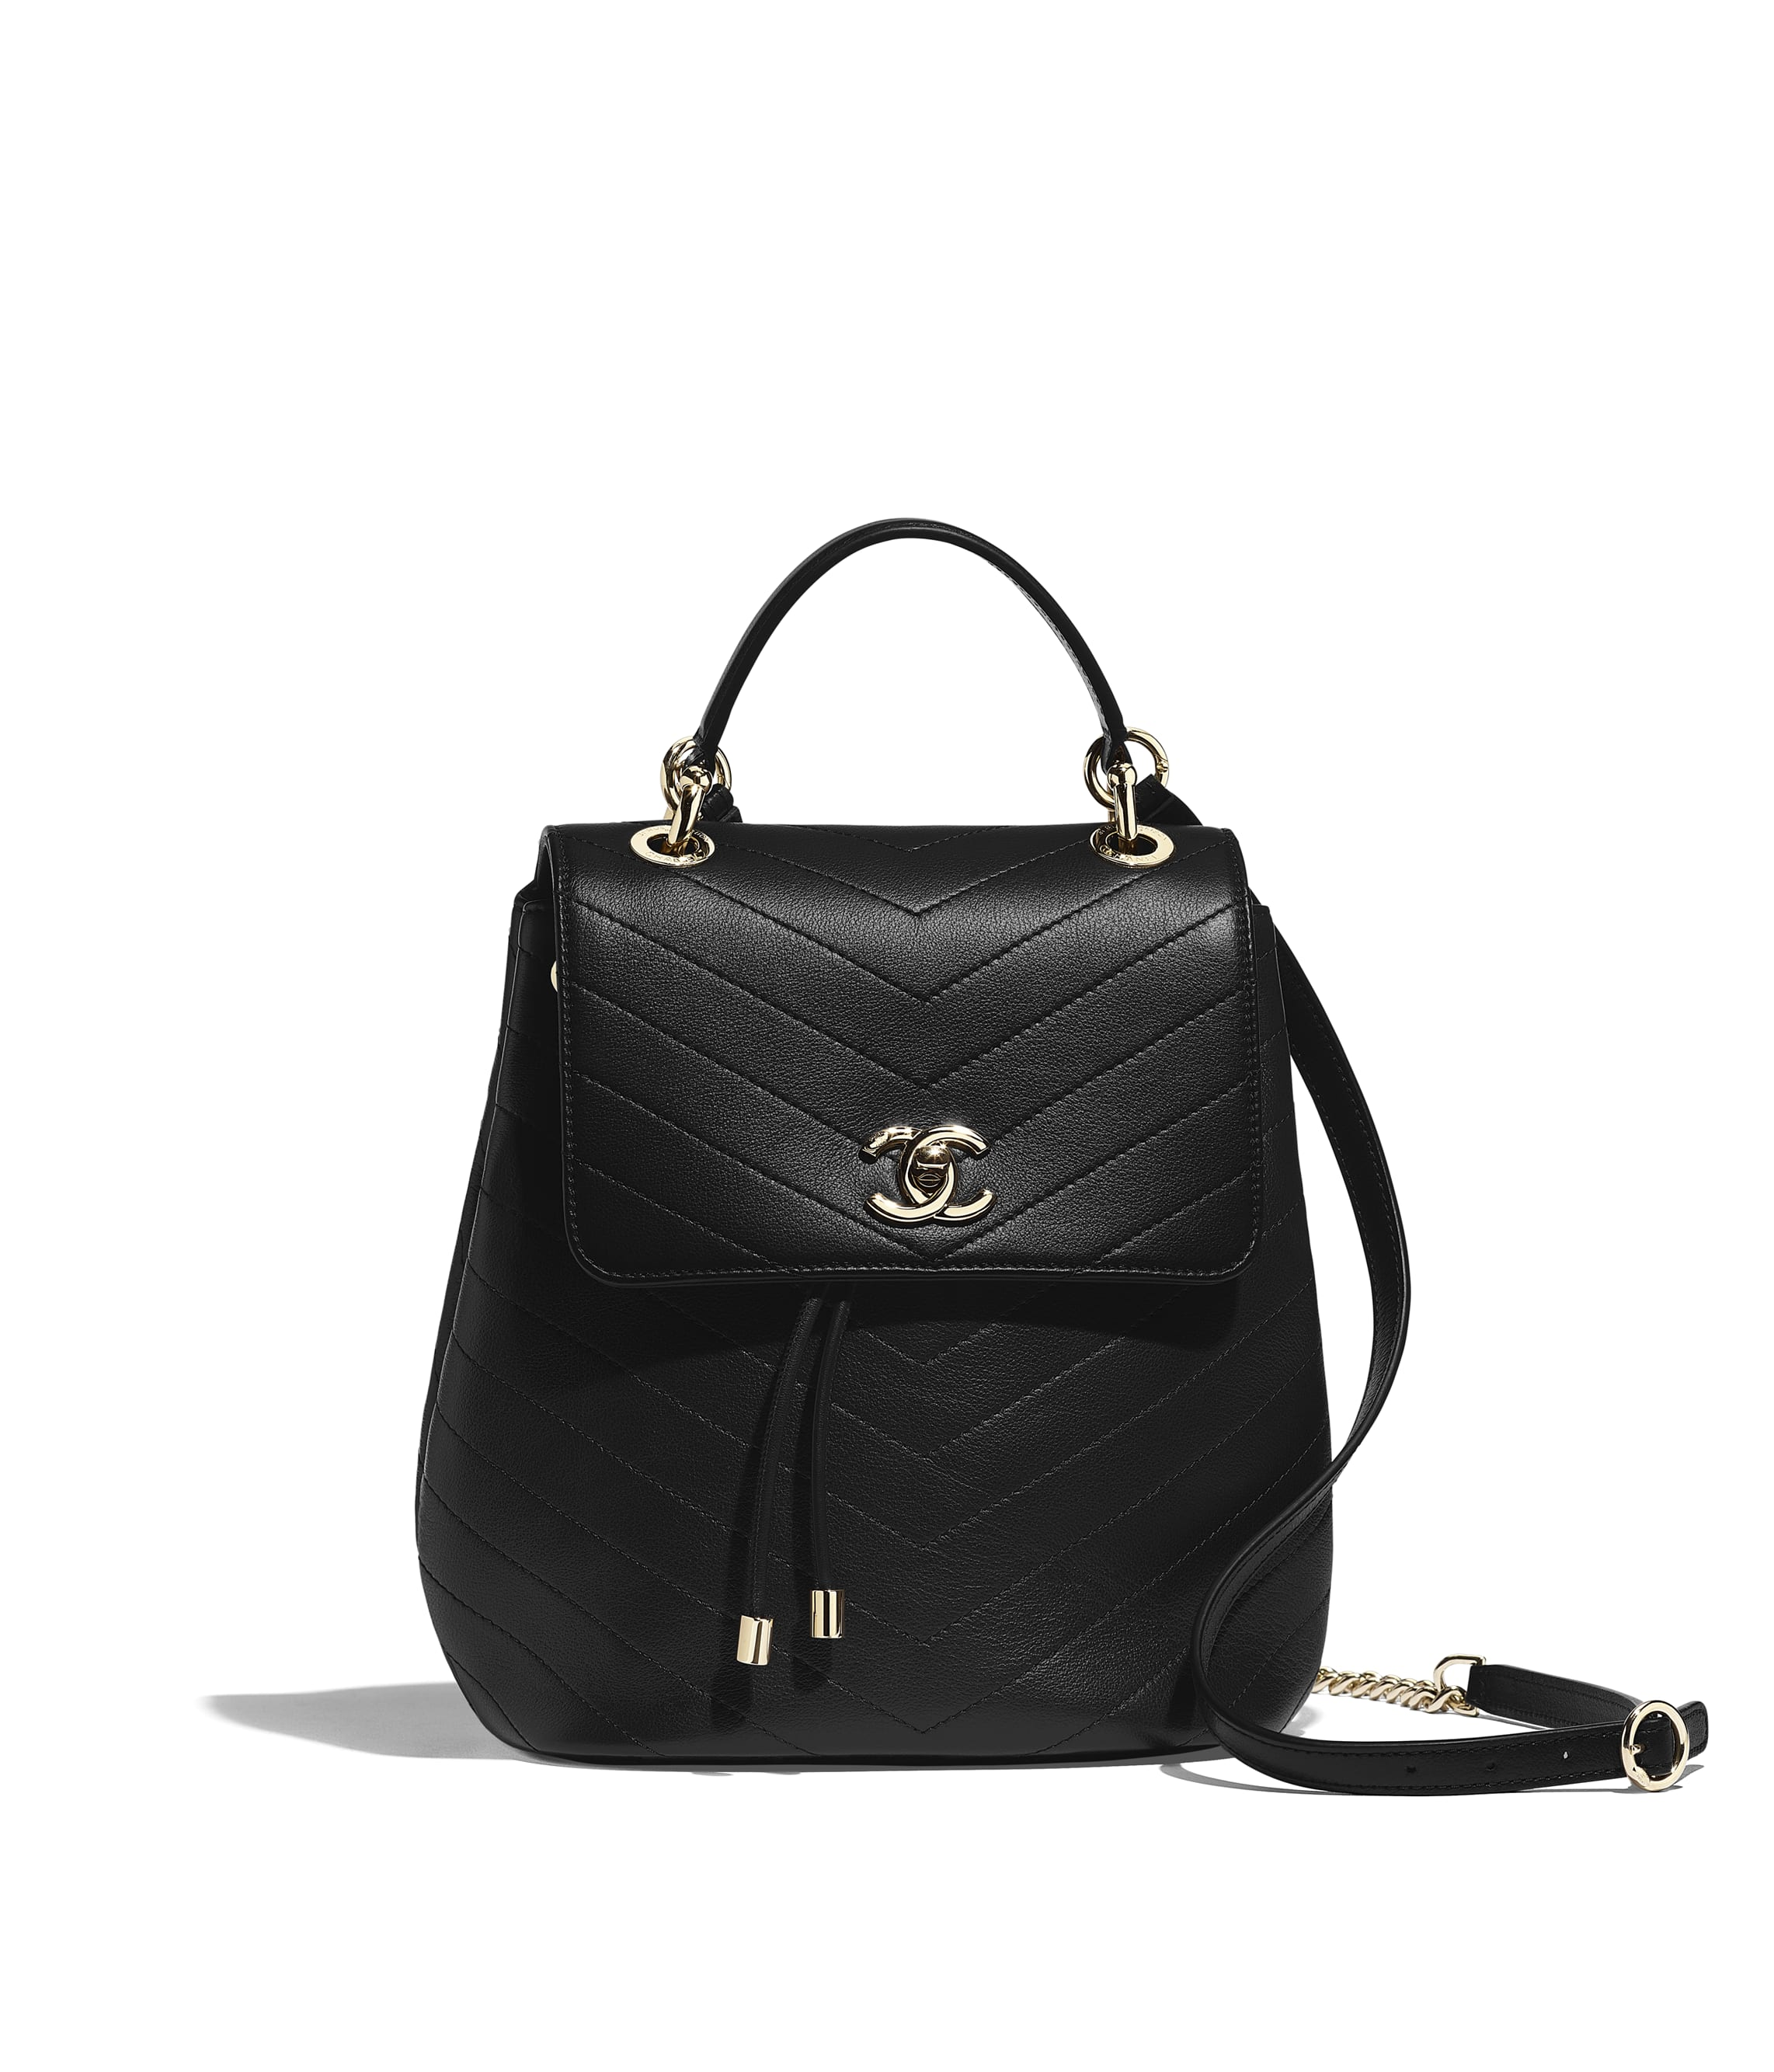 455201fcc589 Backpacks - Handbags - CHANEL